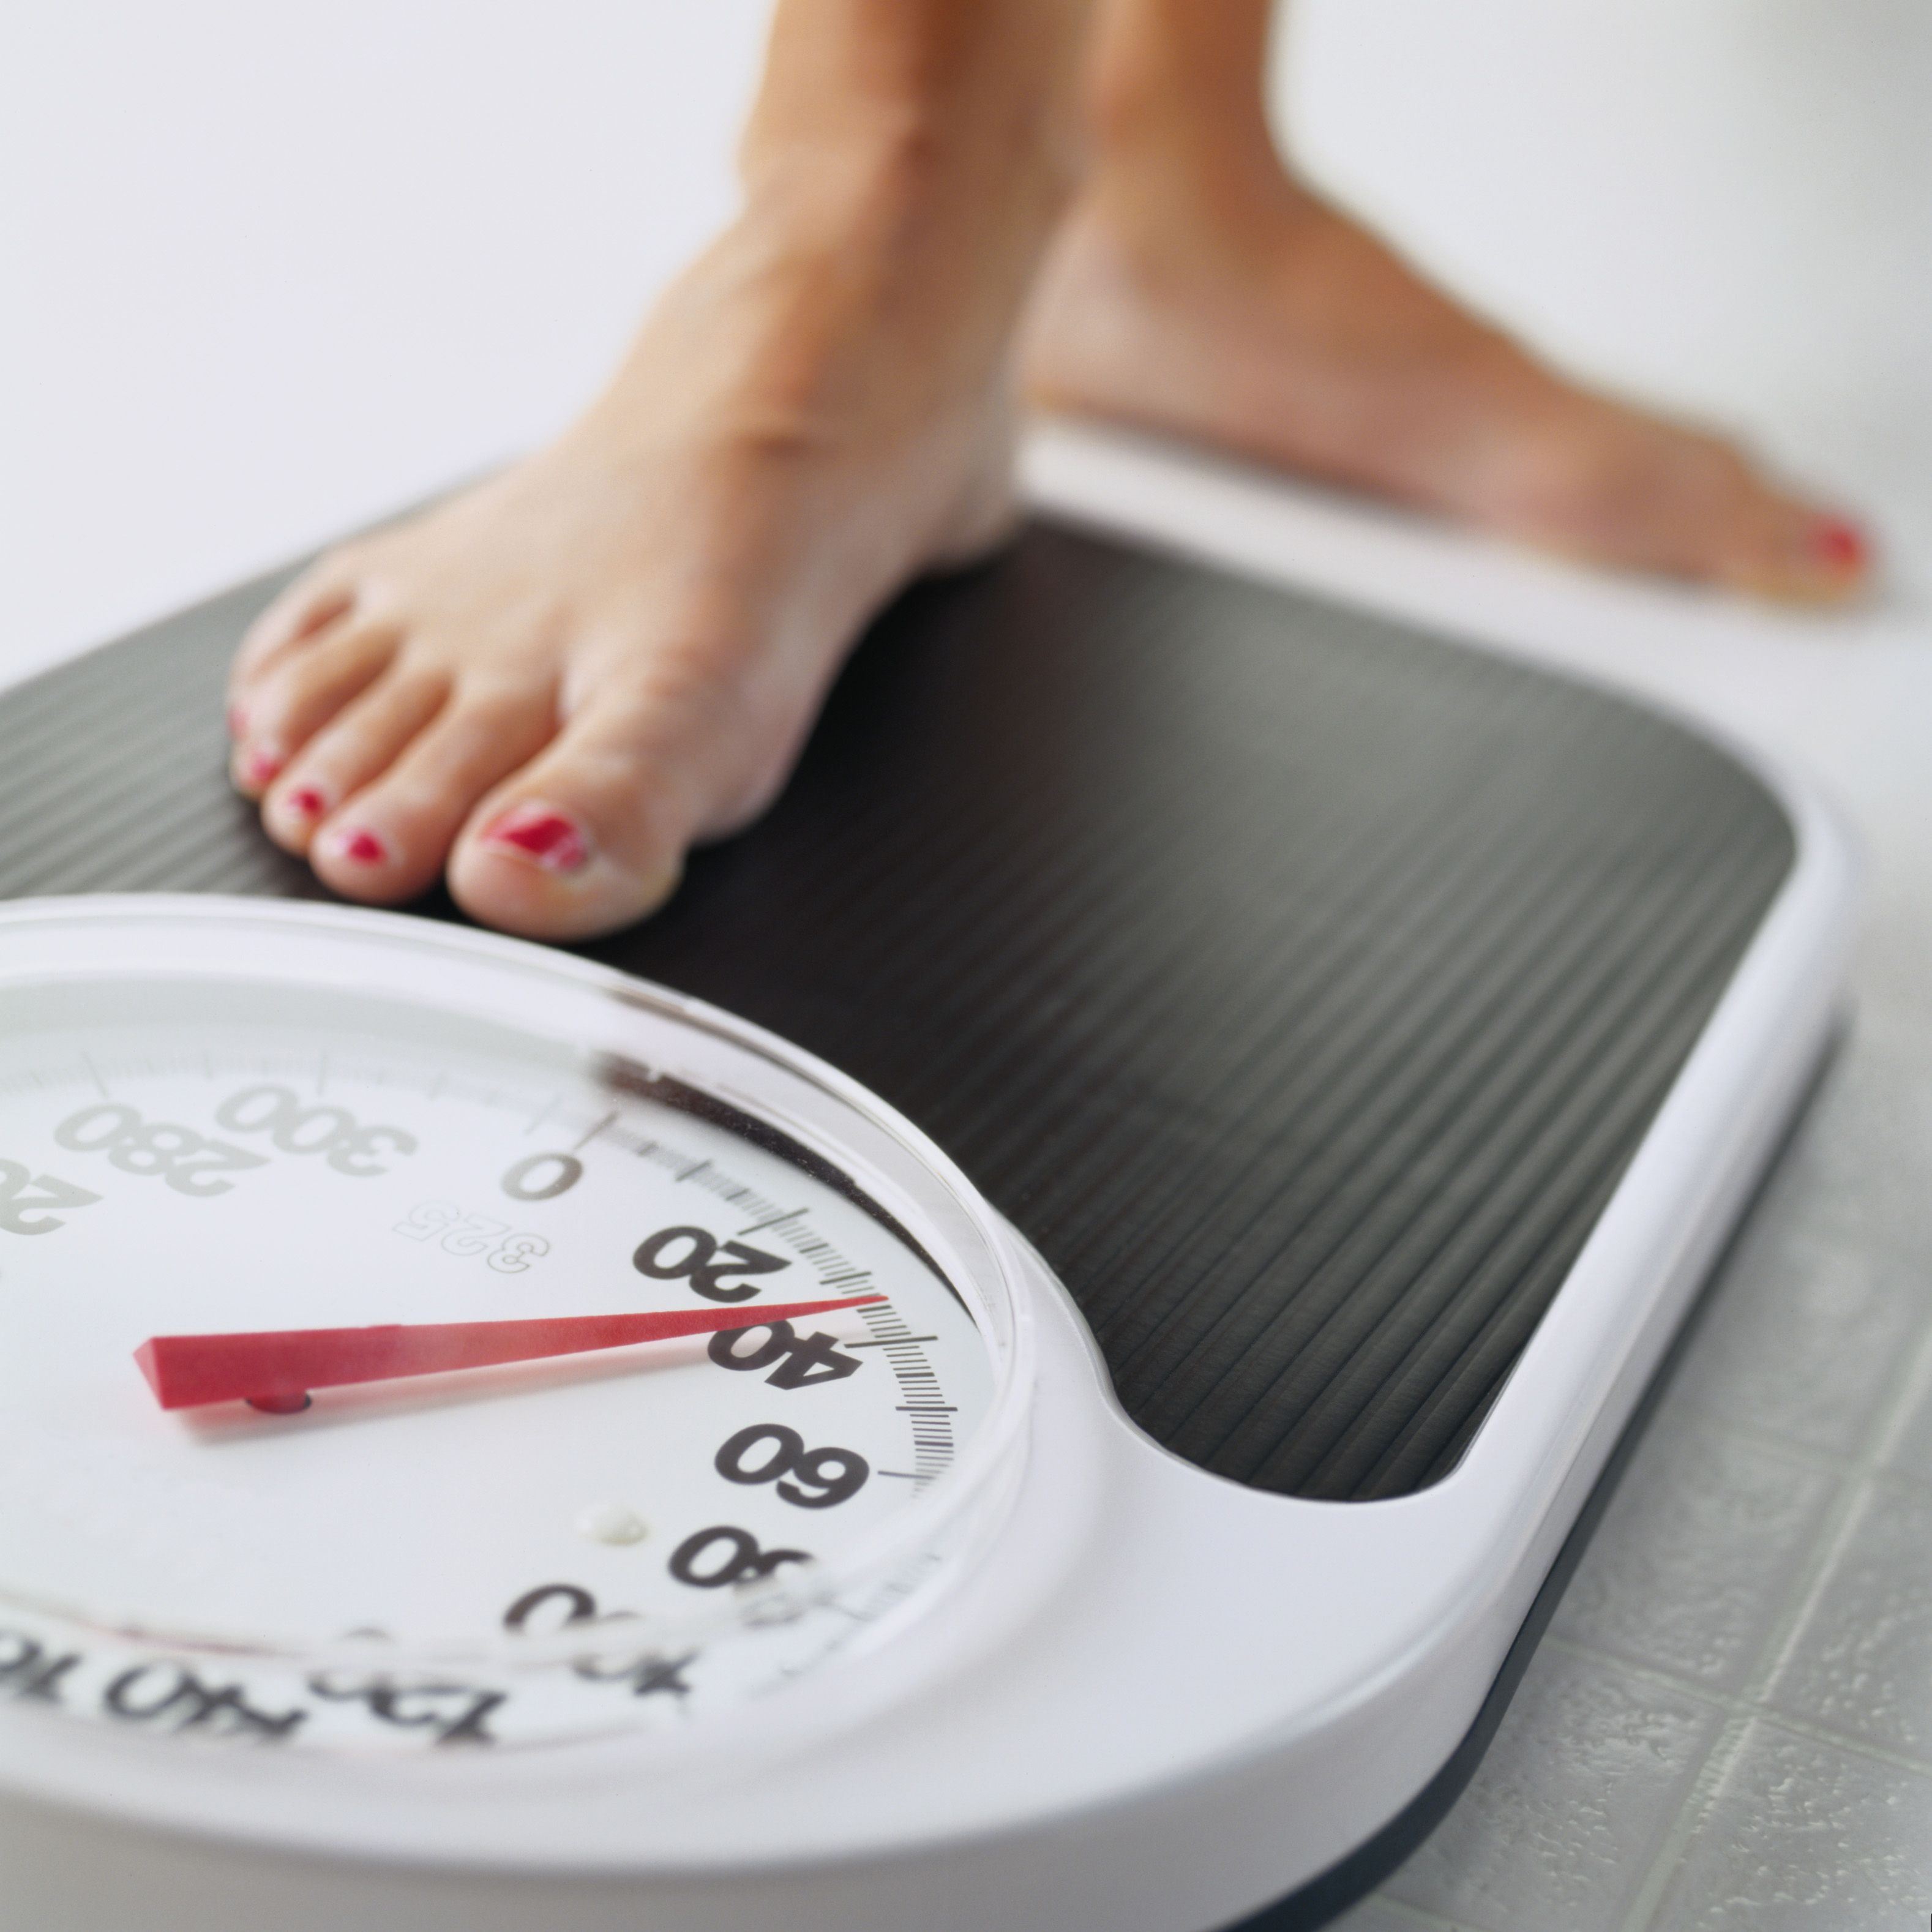 Weight loss physicians dallas